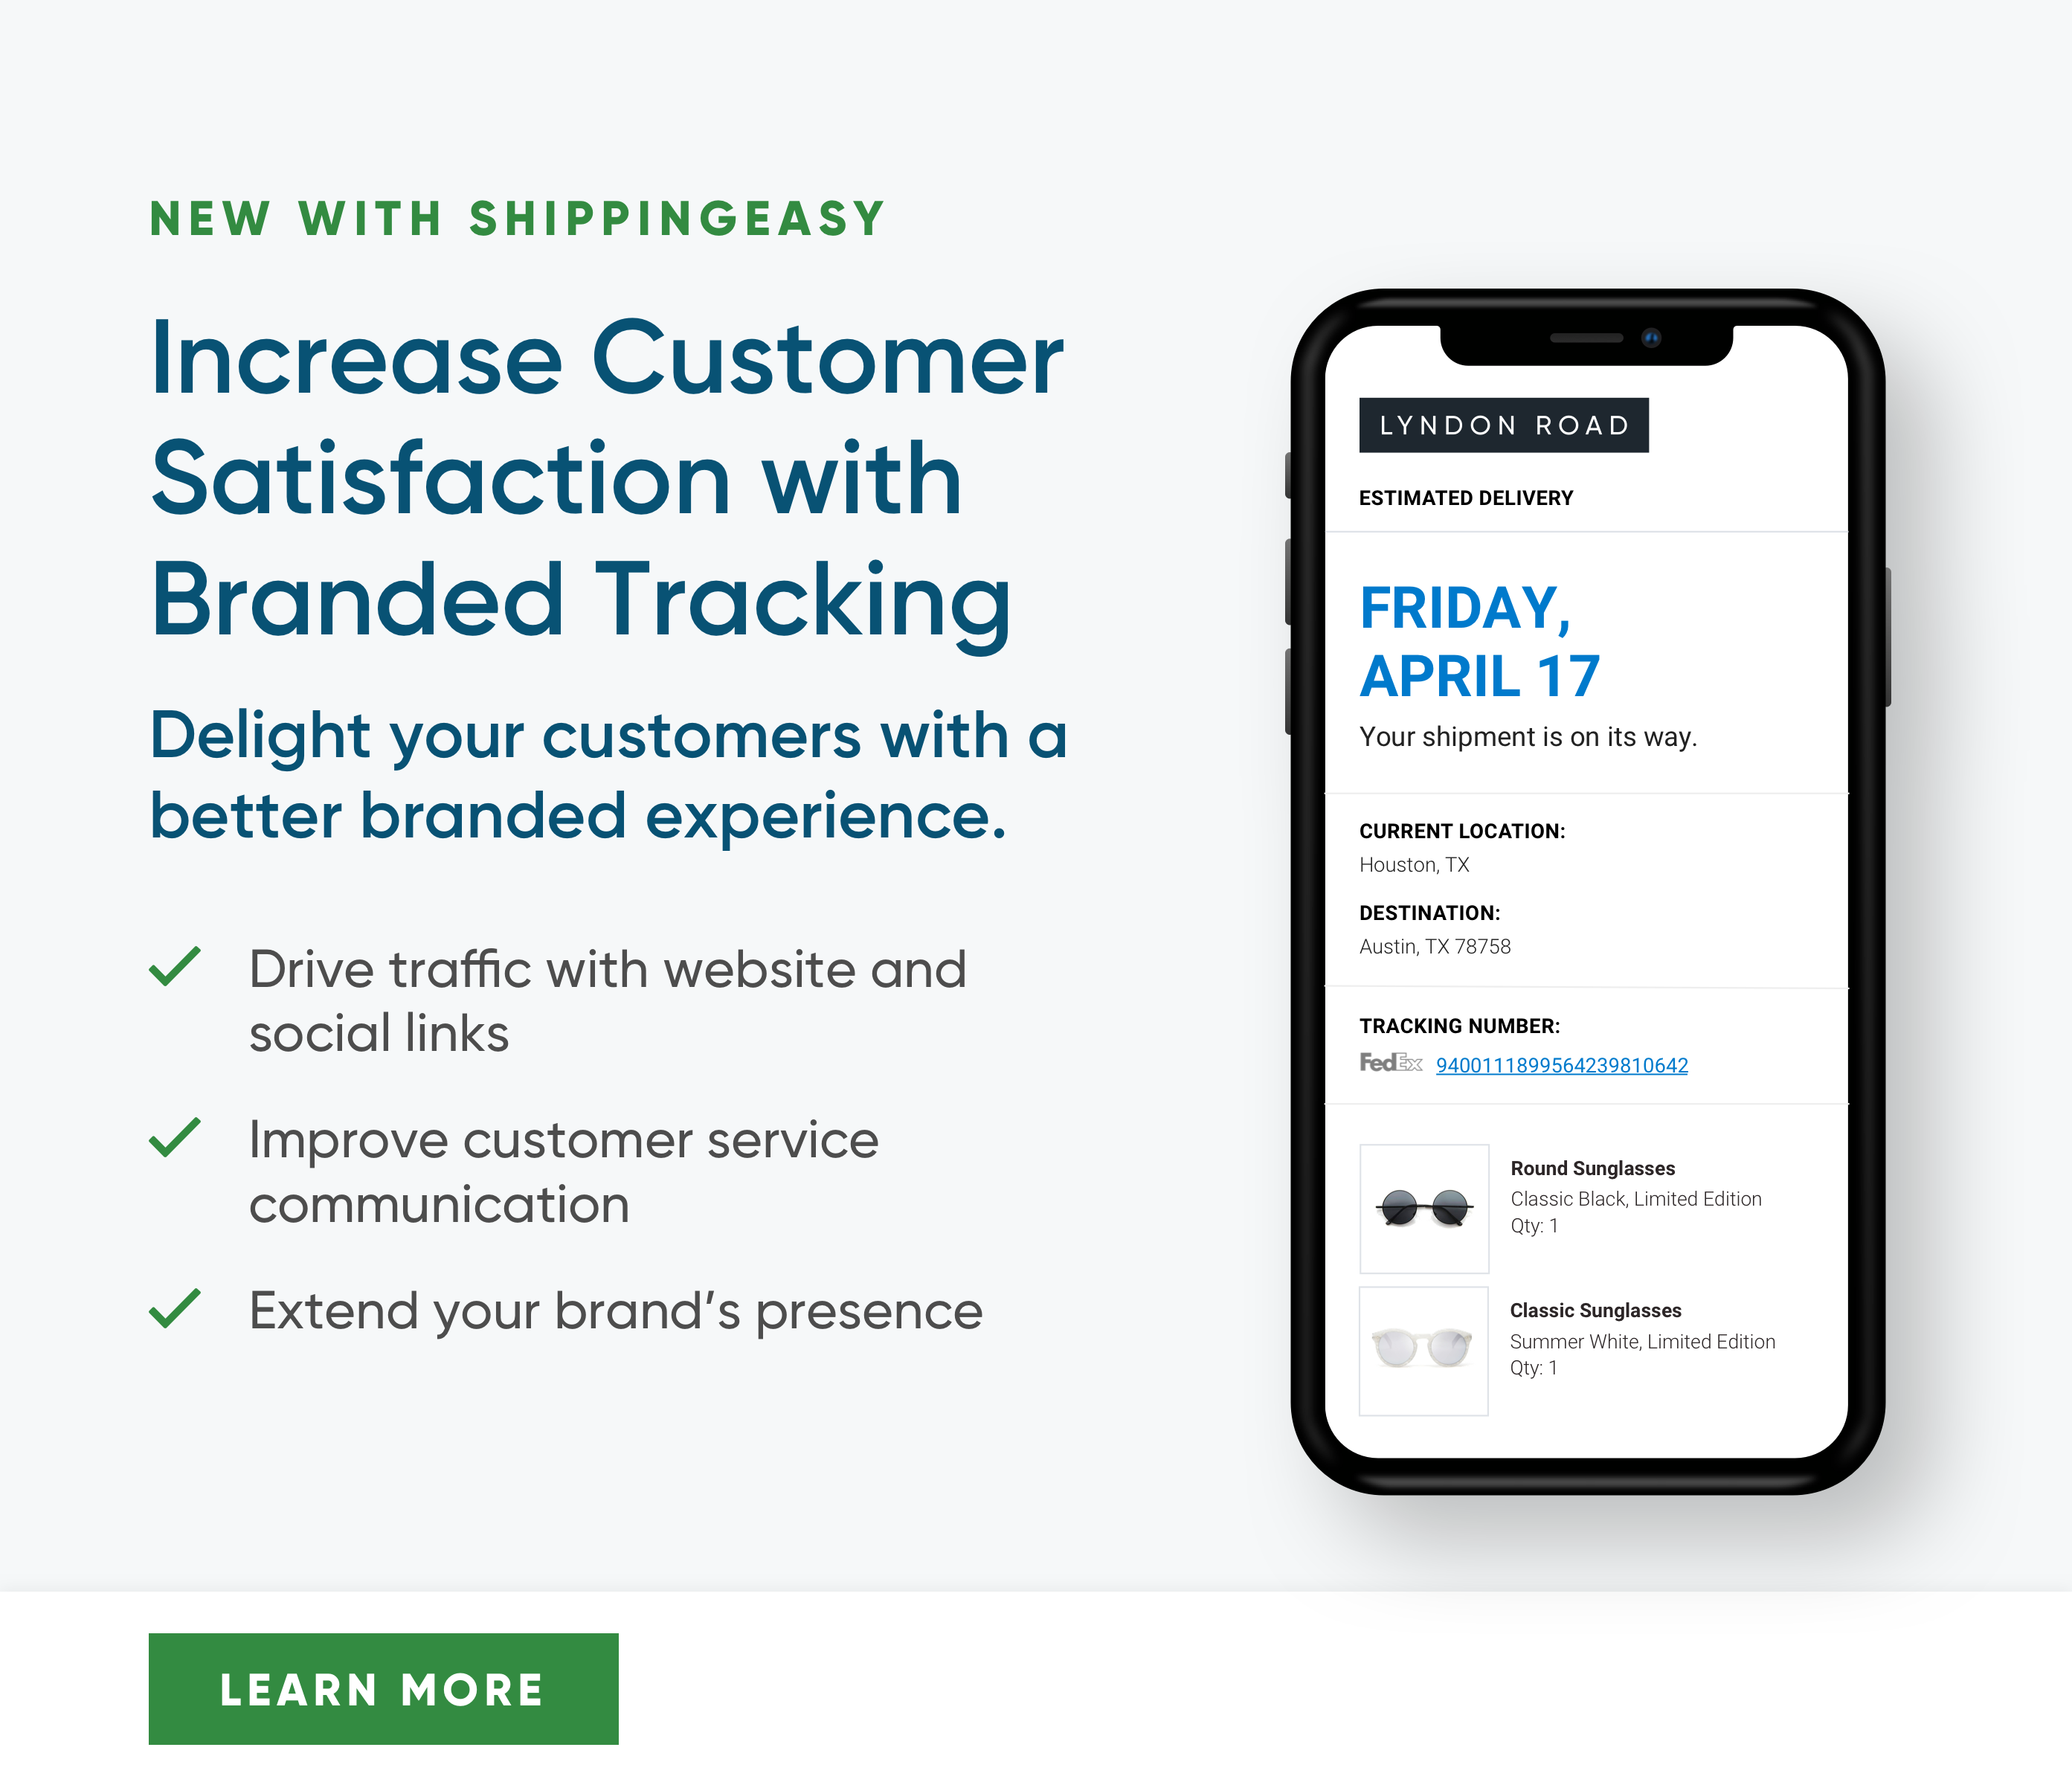 Increase Customer Satisfaction with Branded Tracking